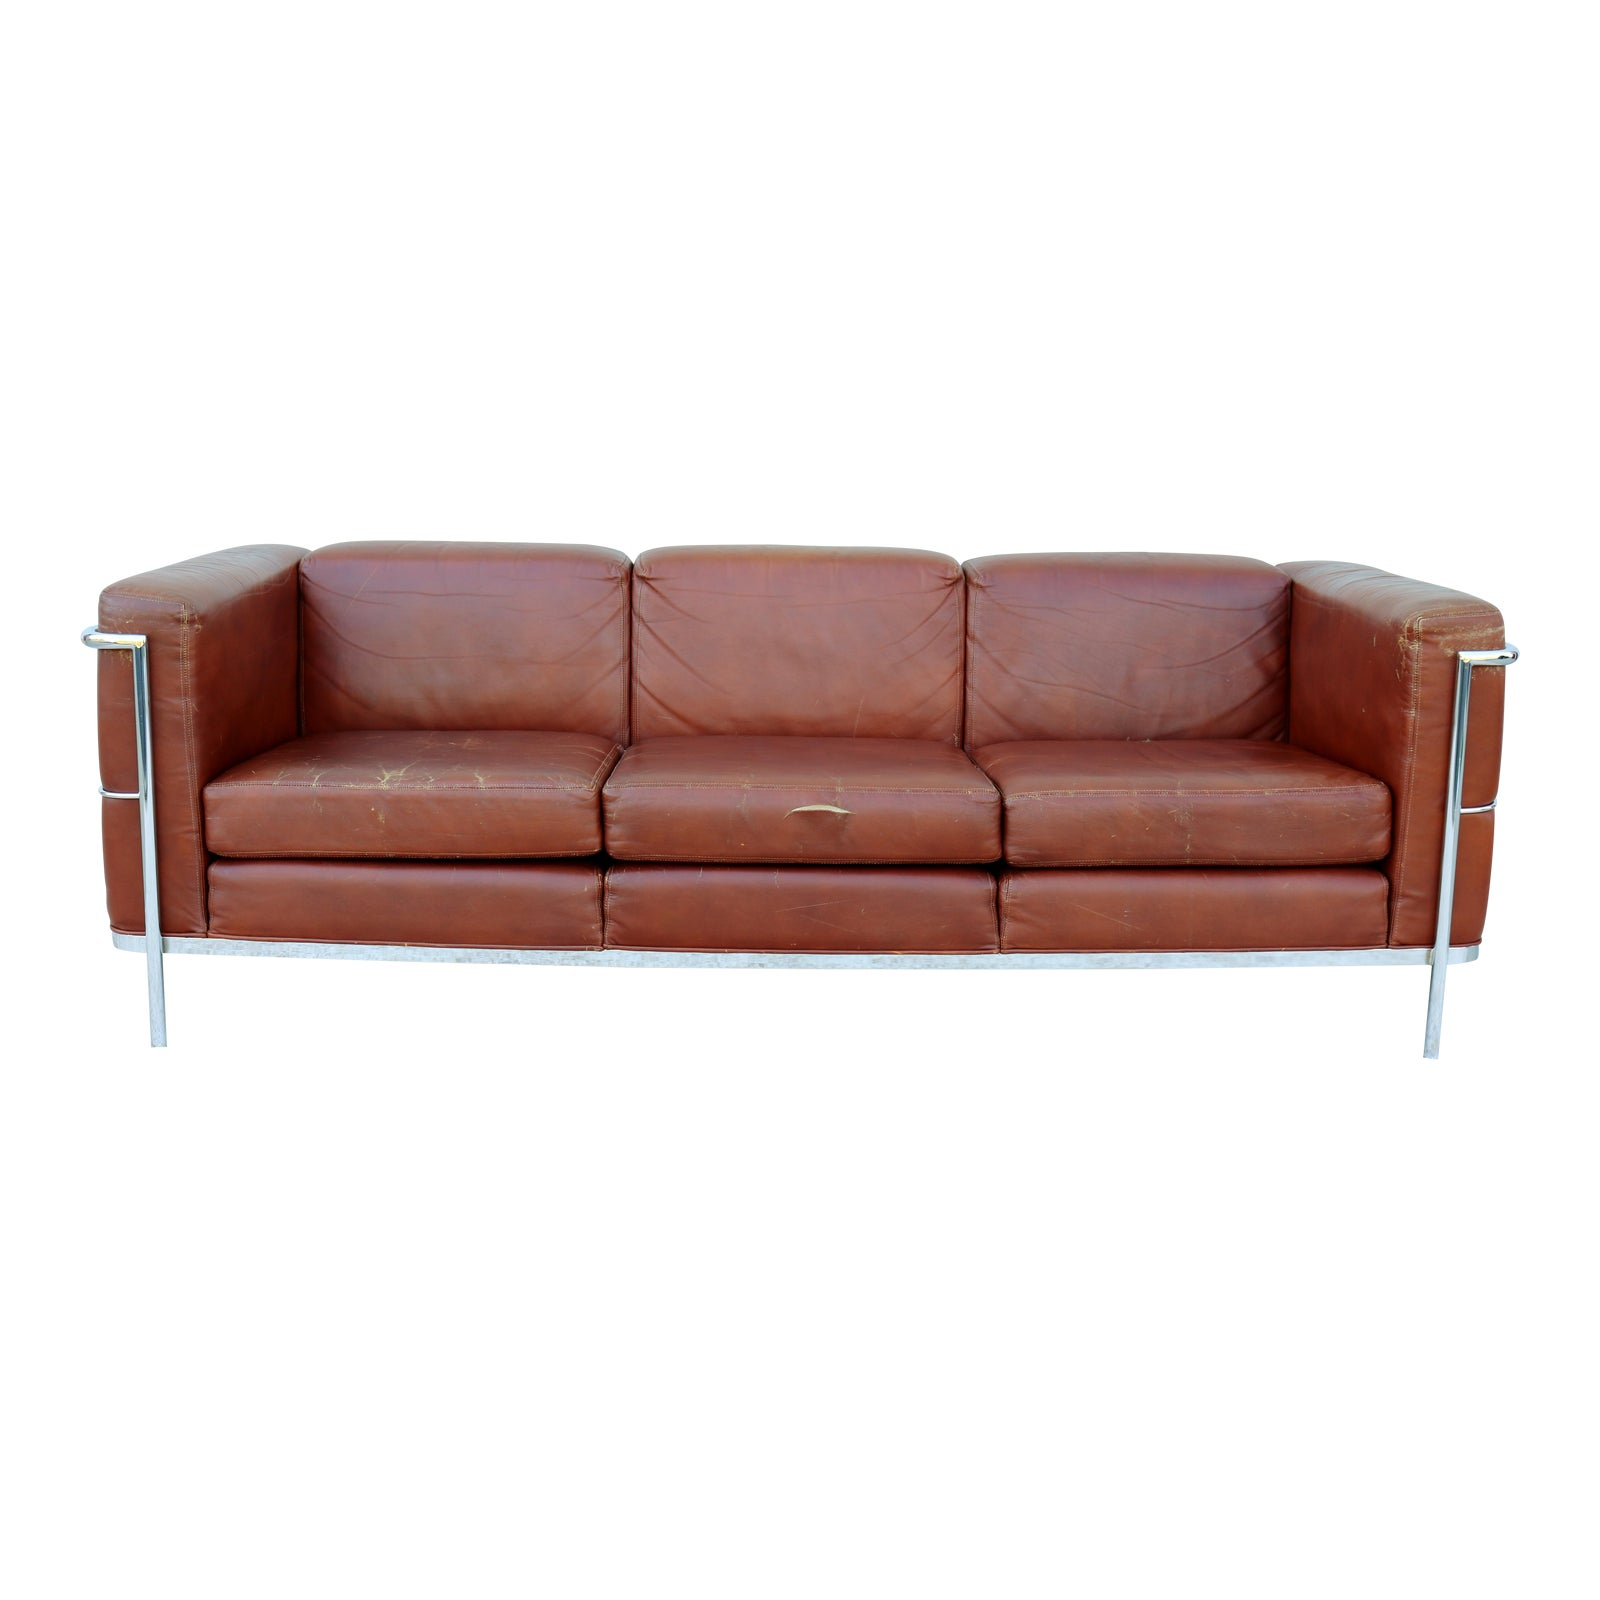 1980s Mid-Century Modern Jack Cartwright Le Corbusier Brown Leather ...